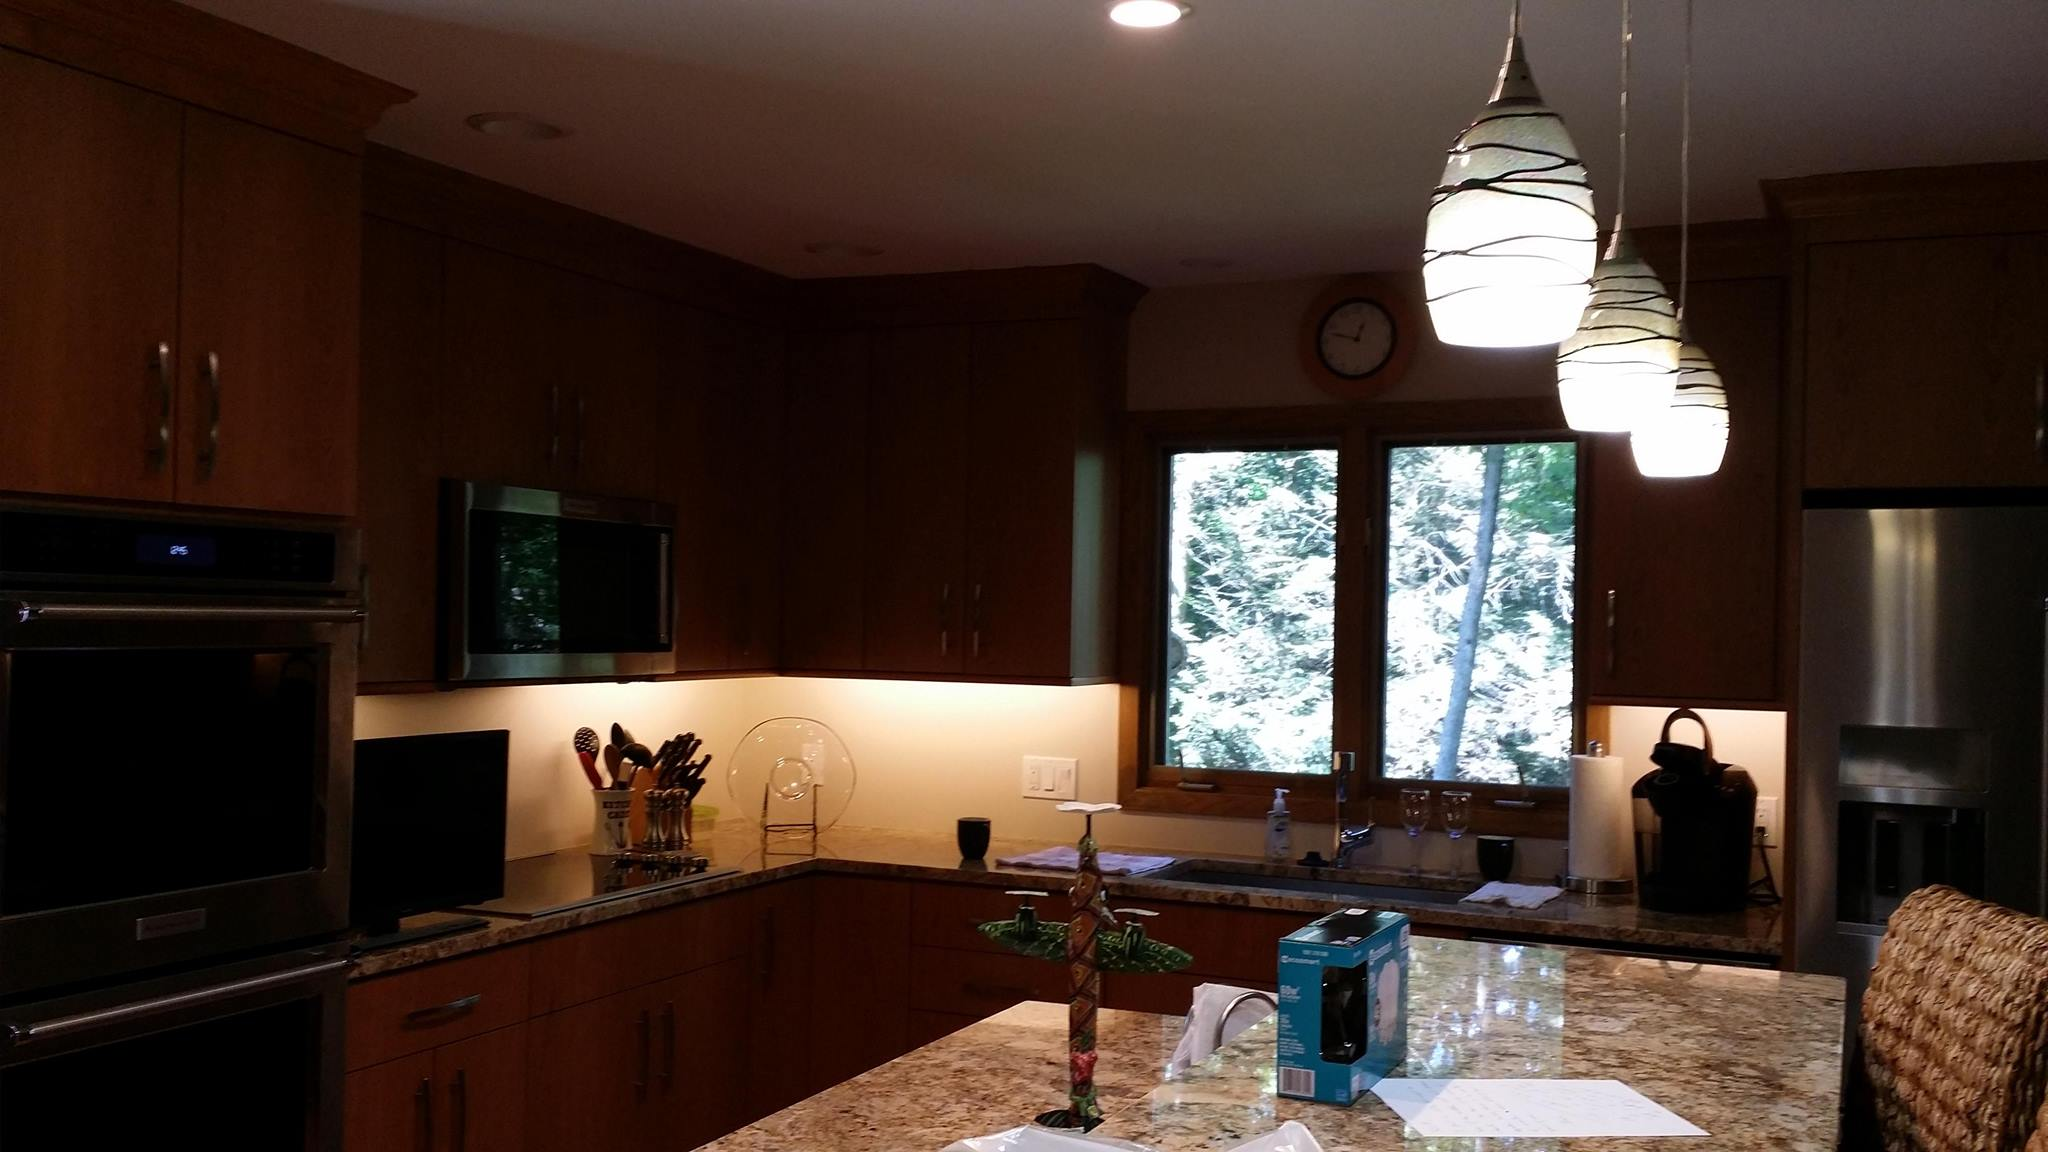 Kitchen - With the under cabinet lights on!